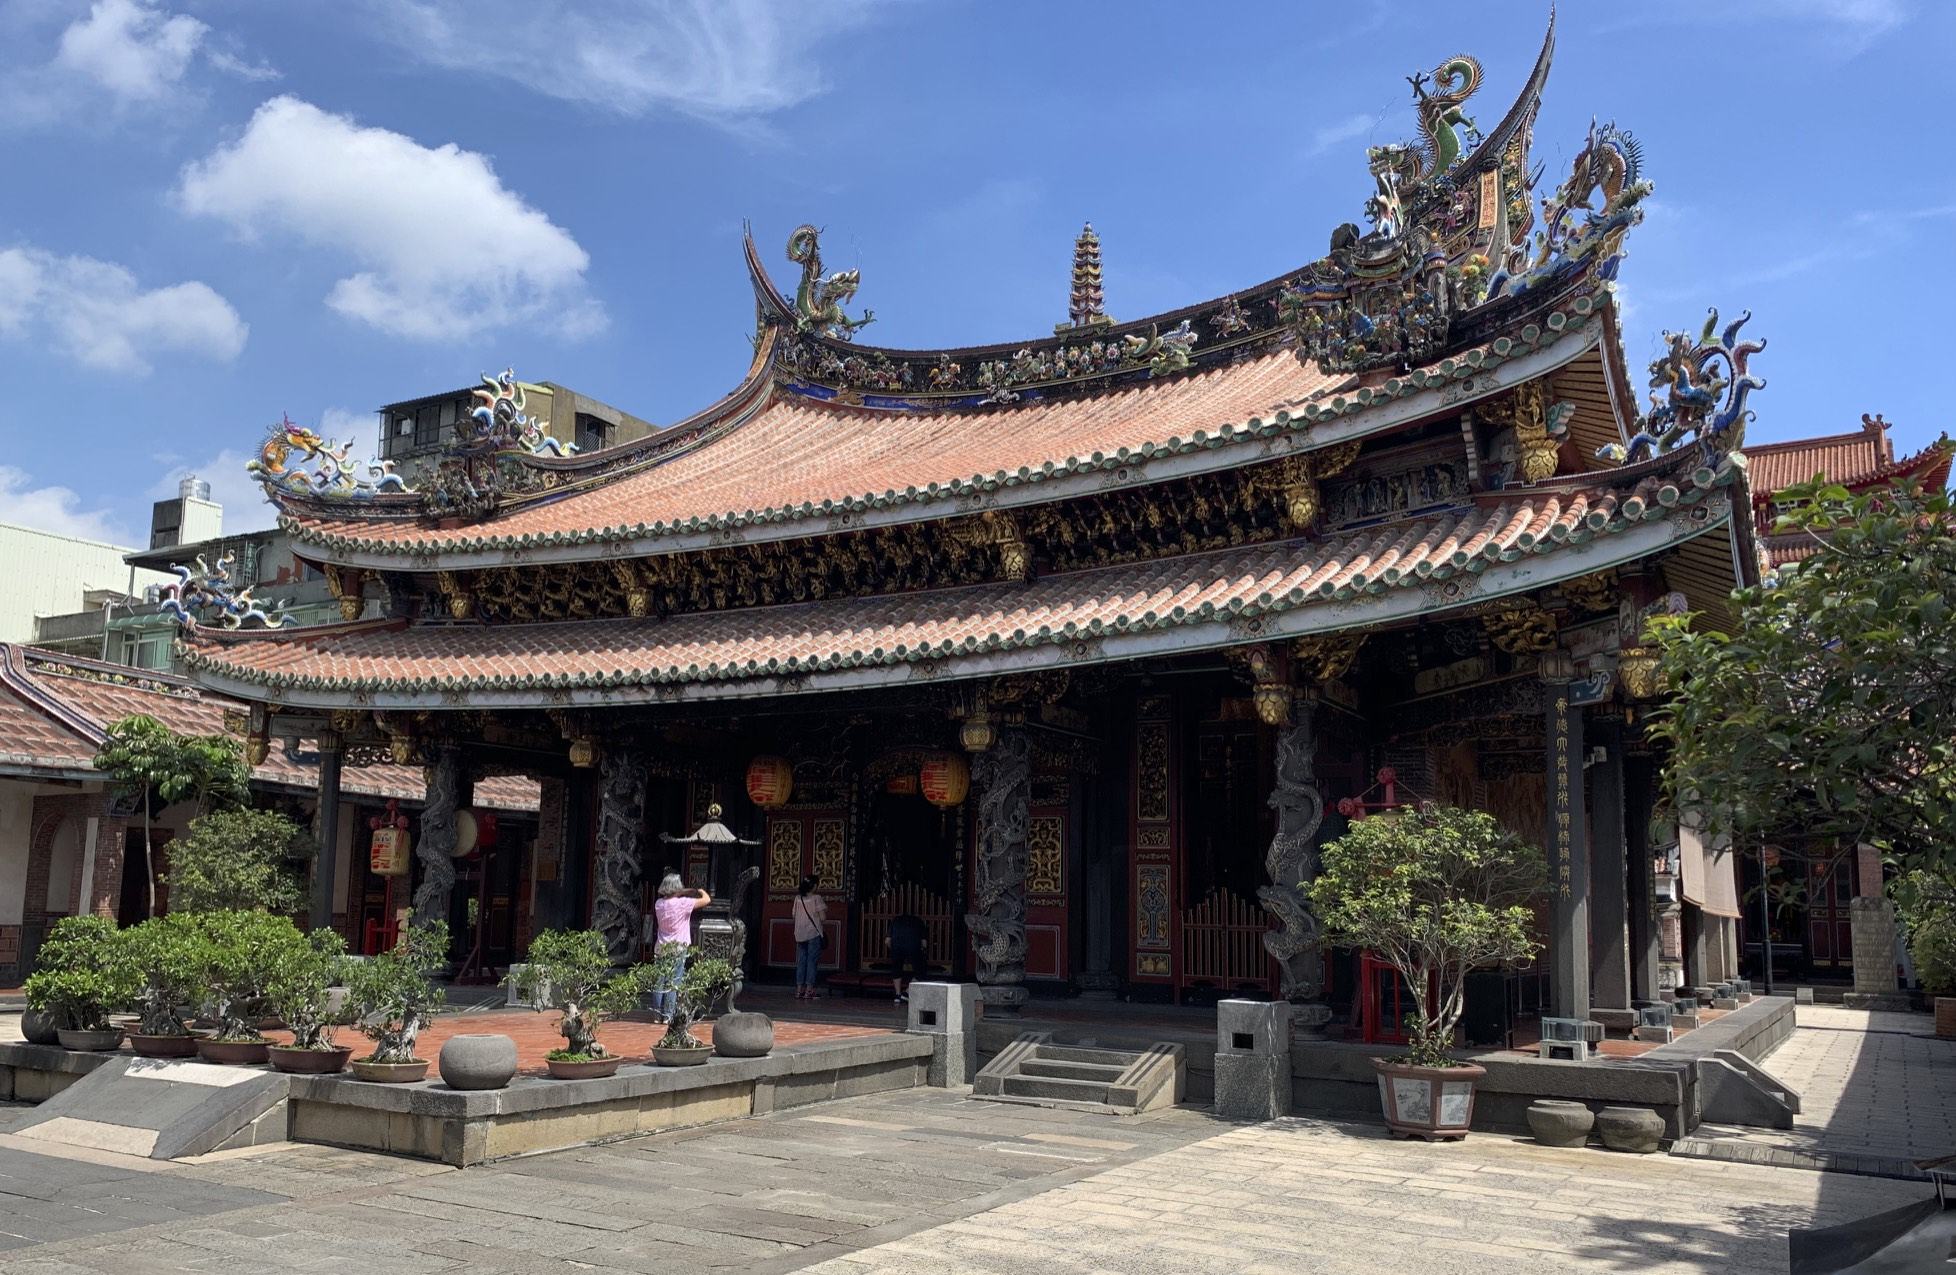 Originally constructed in 1742 as a wooden shrine, the Bao'an Temple is a Taiwanese folk religion temple. Throughout Taiwan's history, the temple was renovated and reconstructed numerous times, leading to a 2003 induction into UNESCO for cultural heritage conservation.  Dedicated to the Taoist saint  Baosheng Dadi (保生大帝) , the 900 SQ METRE large temple faces south, in line with Feng-Shui practices, and houses the front, main, and rear halls, along with the east and west halls. The buildings also run from tallest to shortest in that order, in observance of Confucian principles. The temple also houses a drum tower.  Important architectural elements around the temple grounds include stone carvings, stone lions, dragon columns, stone bamboo windows, and wood, stone, and clay carvings.